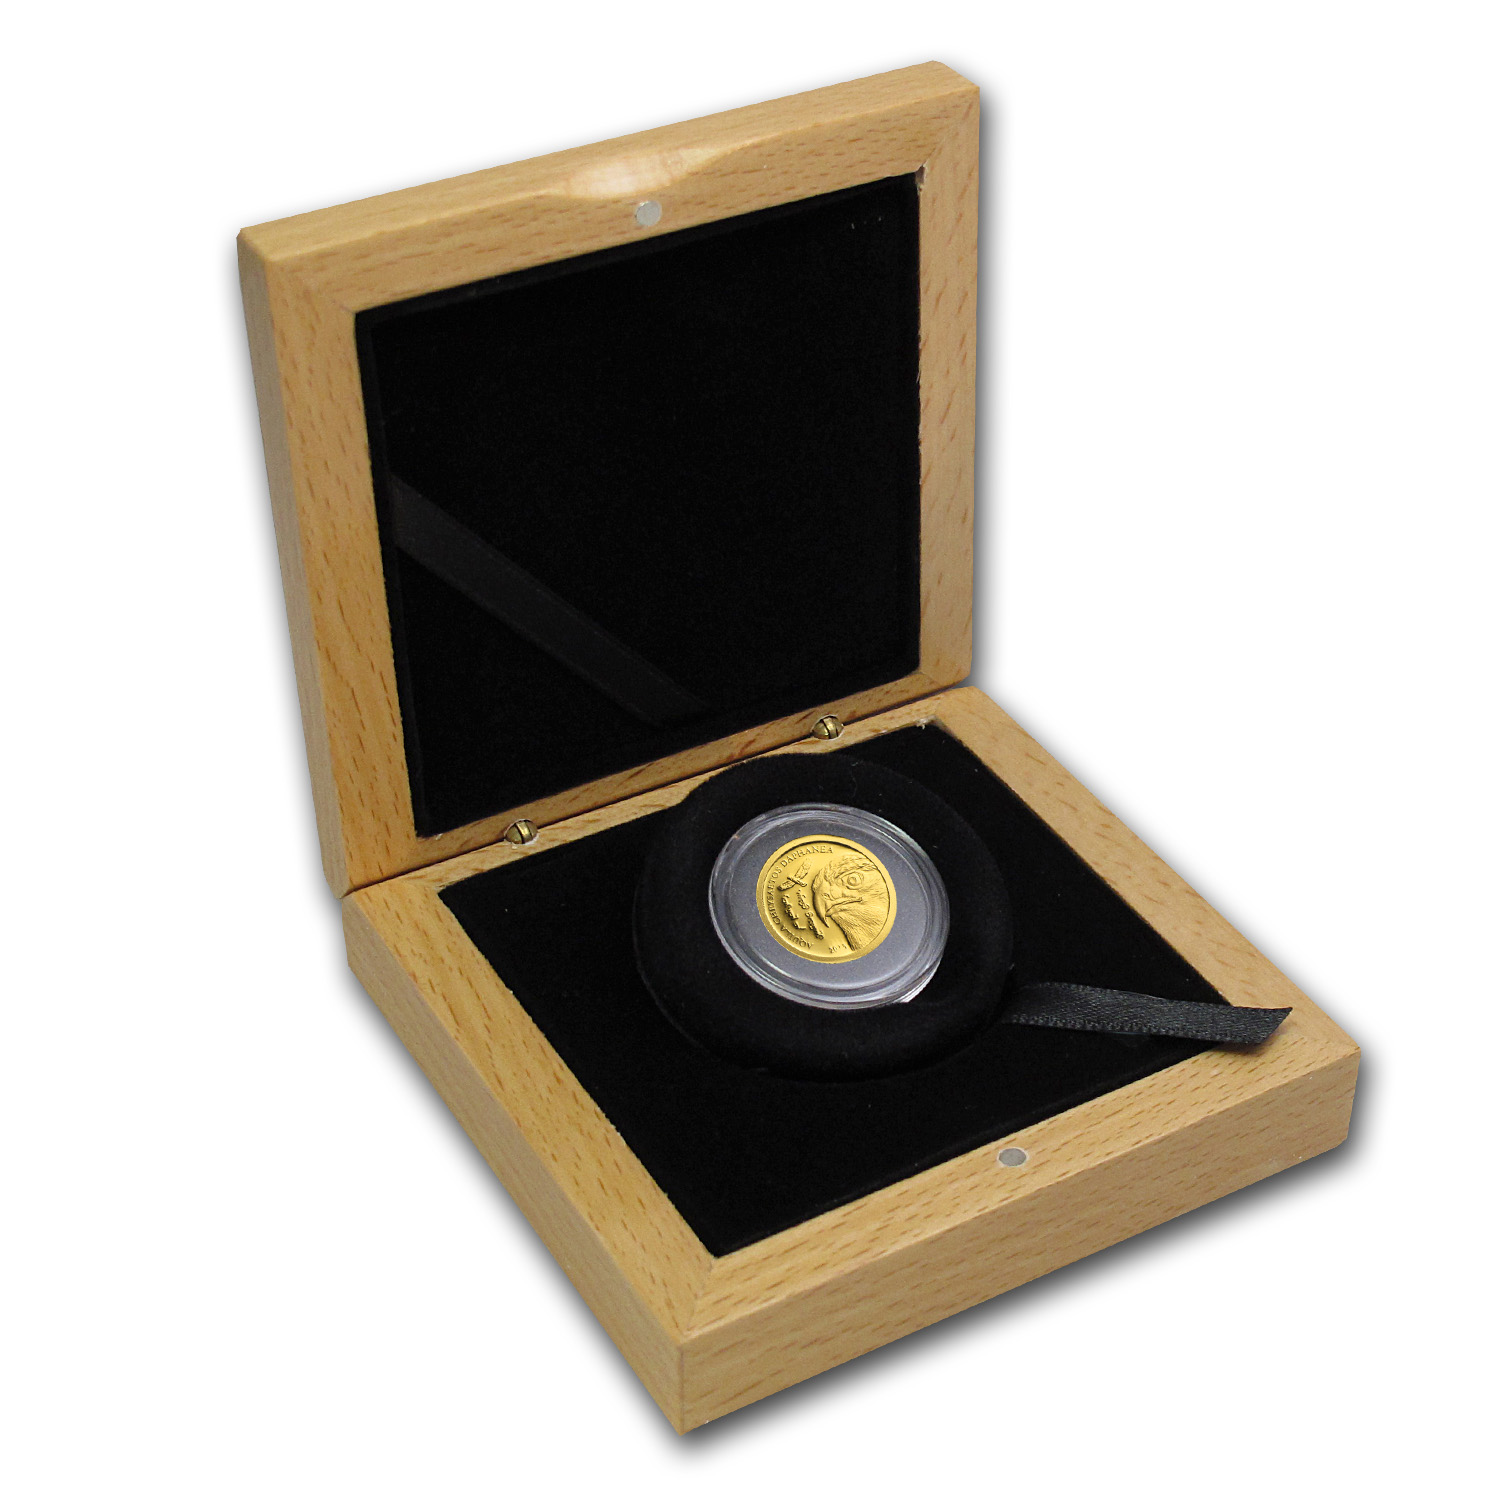 Mongolia 2013 Wildlife - Golden Eagle (1/2 gram of Pure Gold)